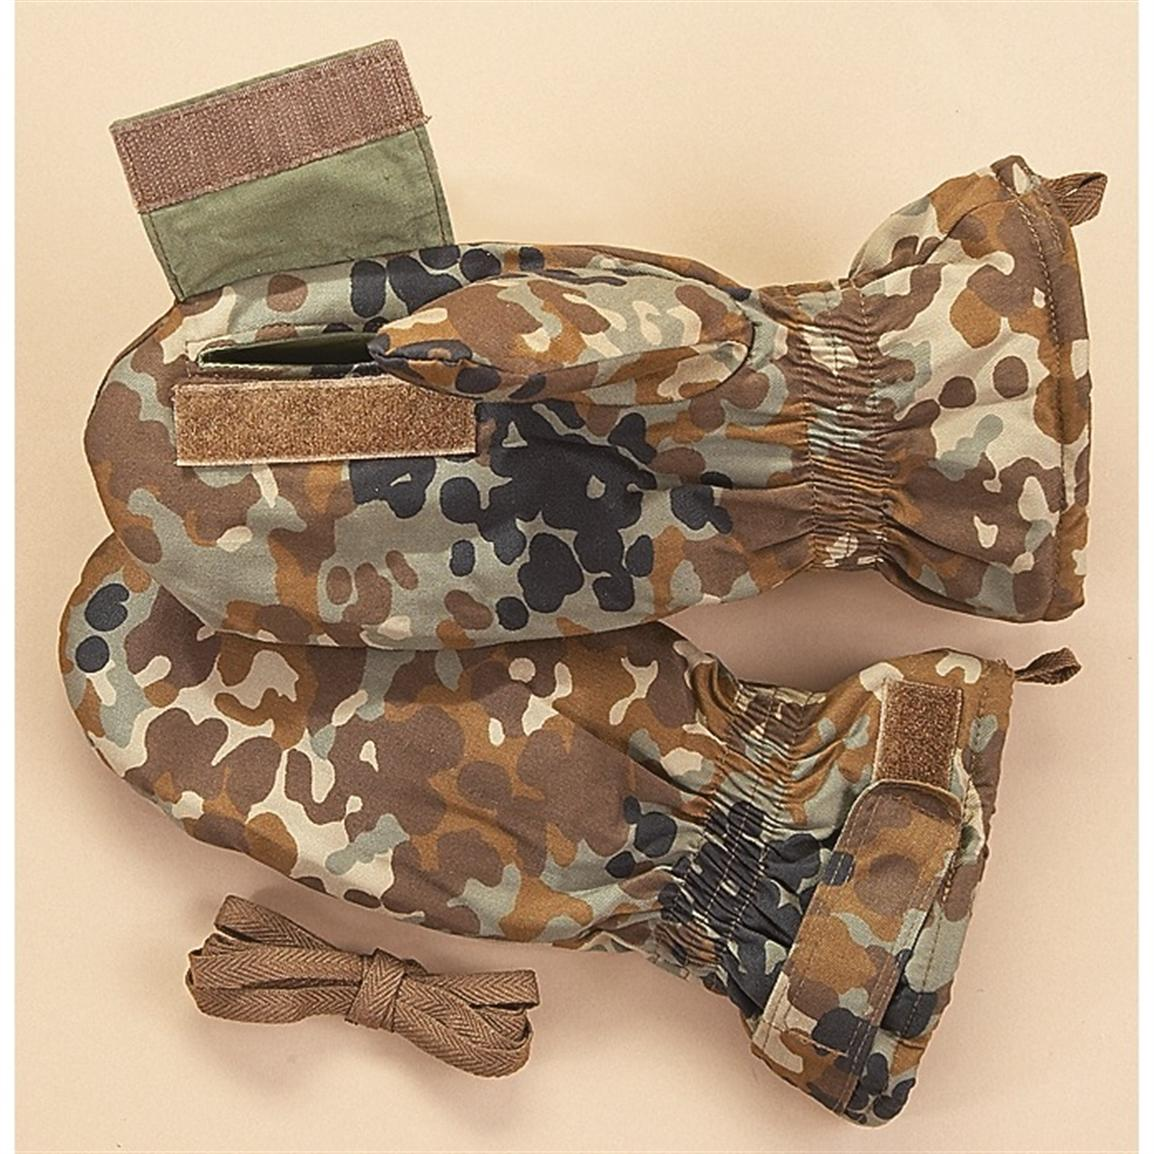 2 Prs. of New Size Large Chinese Military Surplus Shooters' Mittens, Camo